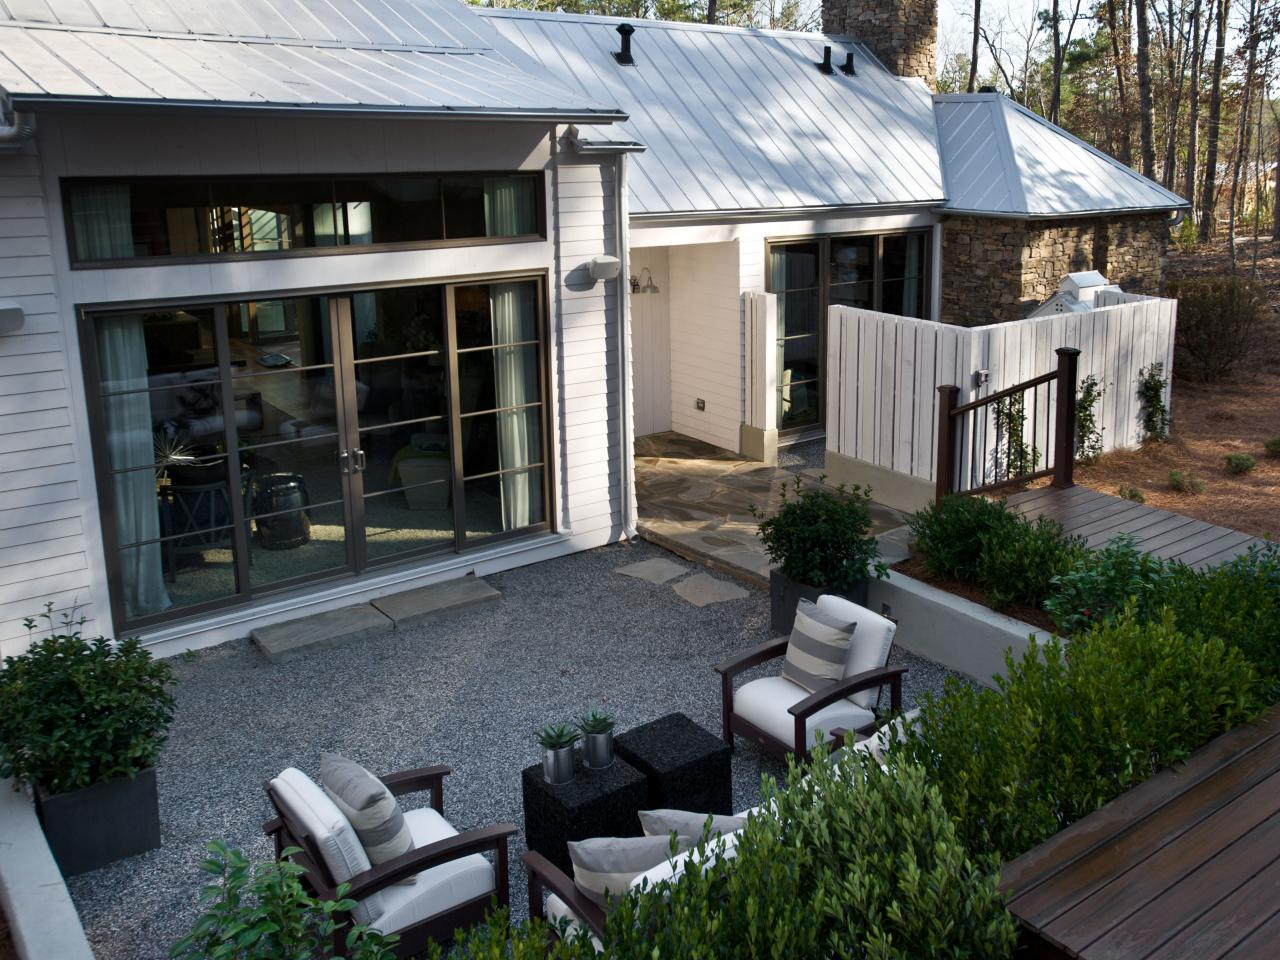 Contemporary Courtyard with Outdoor Living Room Set | HGTV on Outdoor Living Room Set id=21089